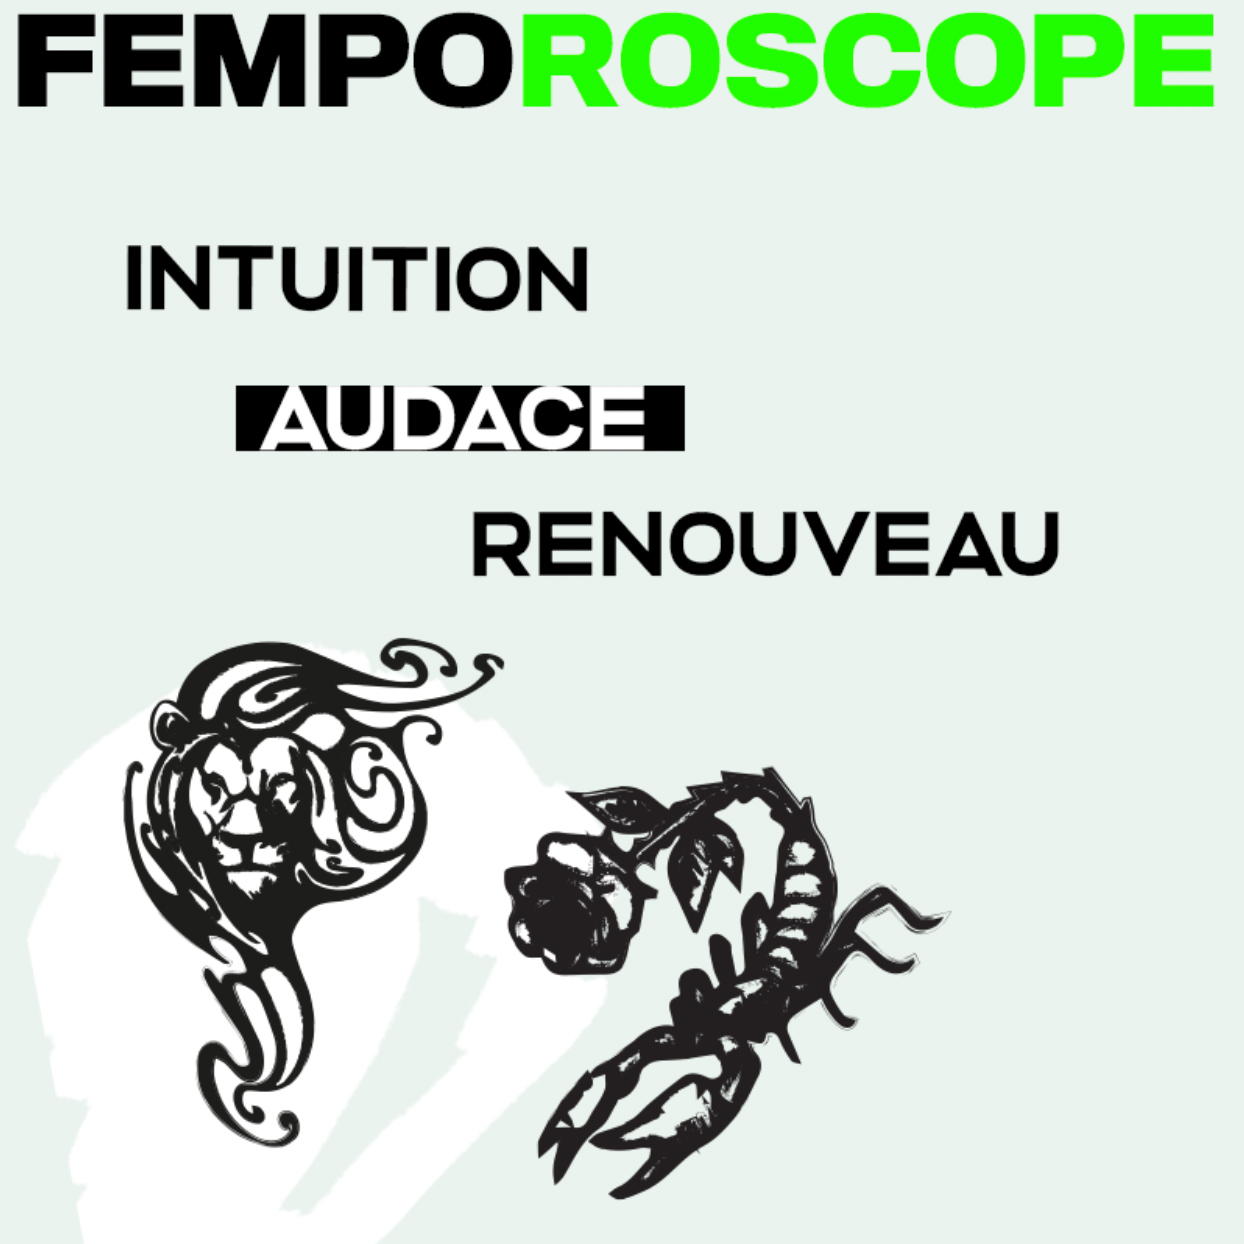 horoscope-fempo-mai-2020